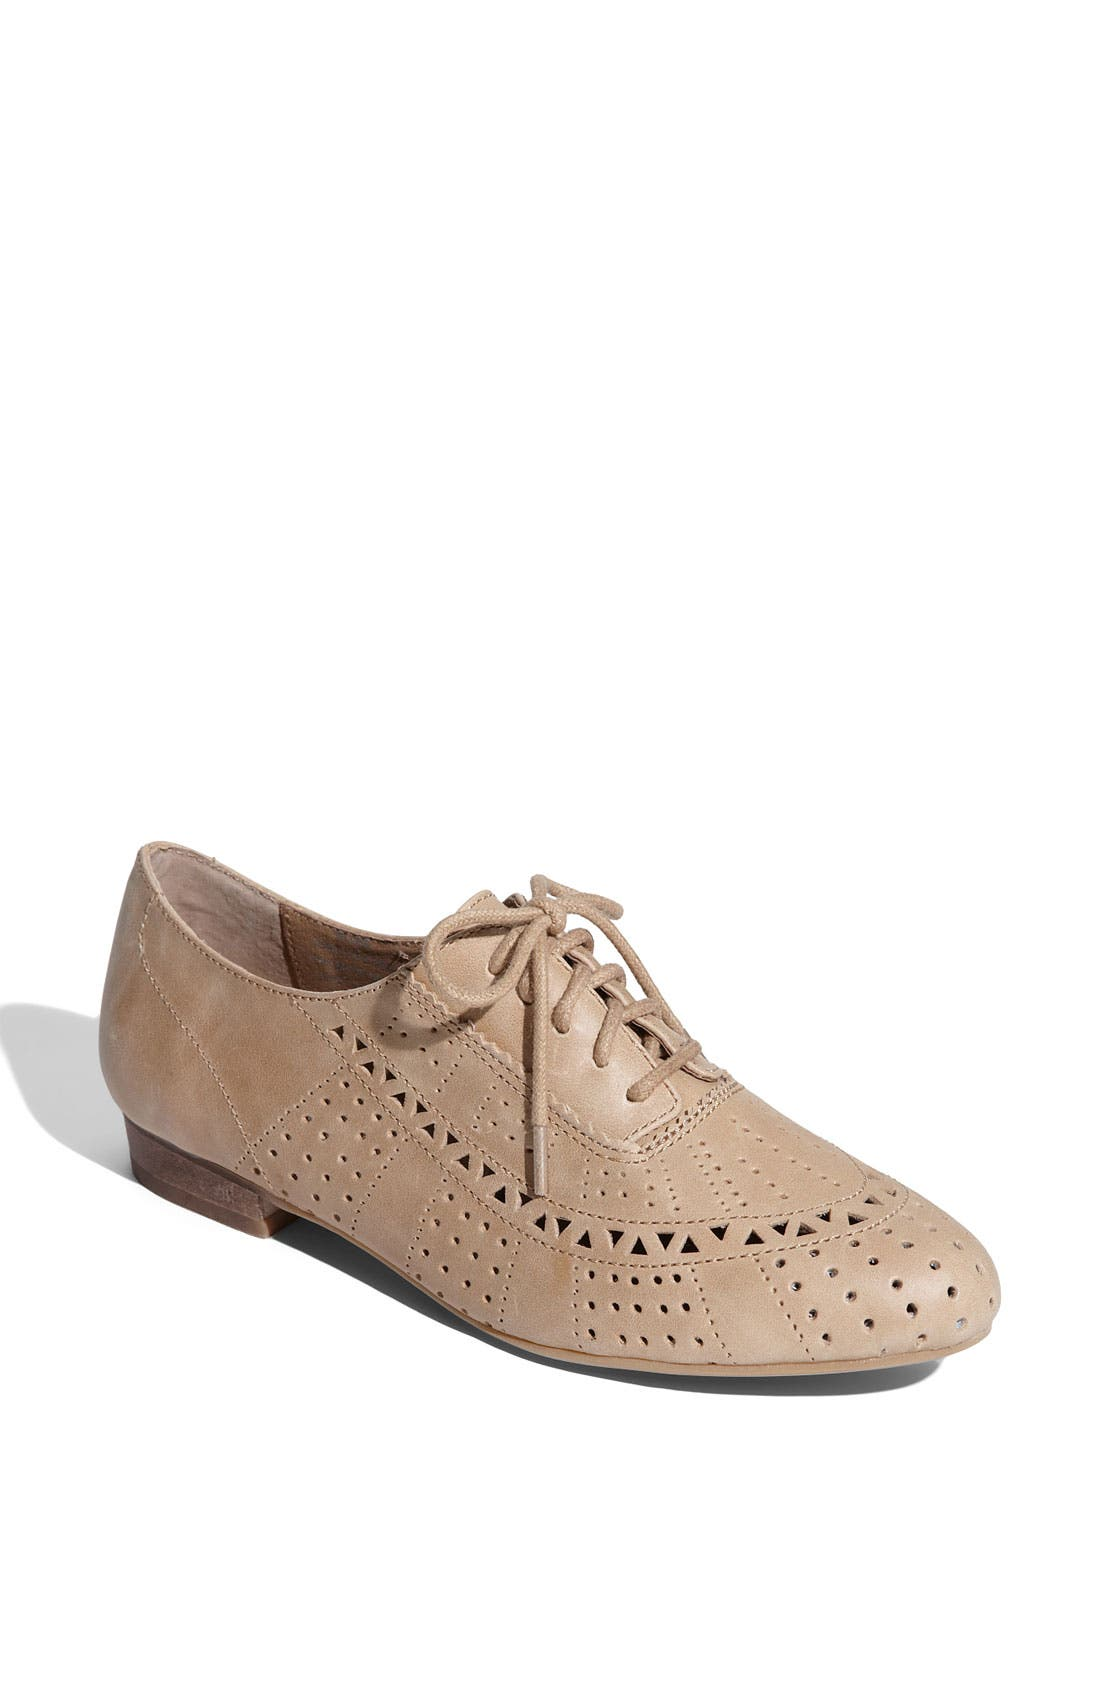 Alternate Image 1 Selected - Jeffrey Campbell 'Miller' Oxford